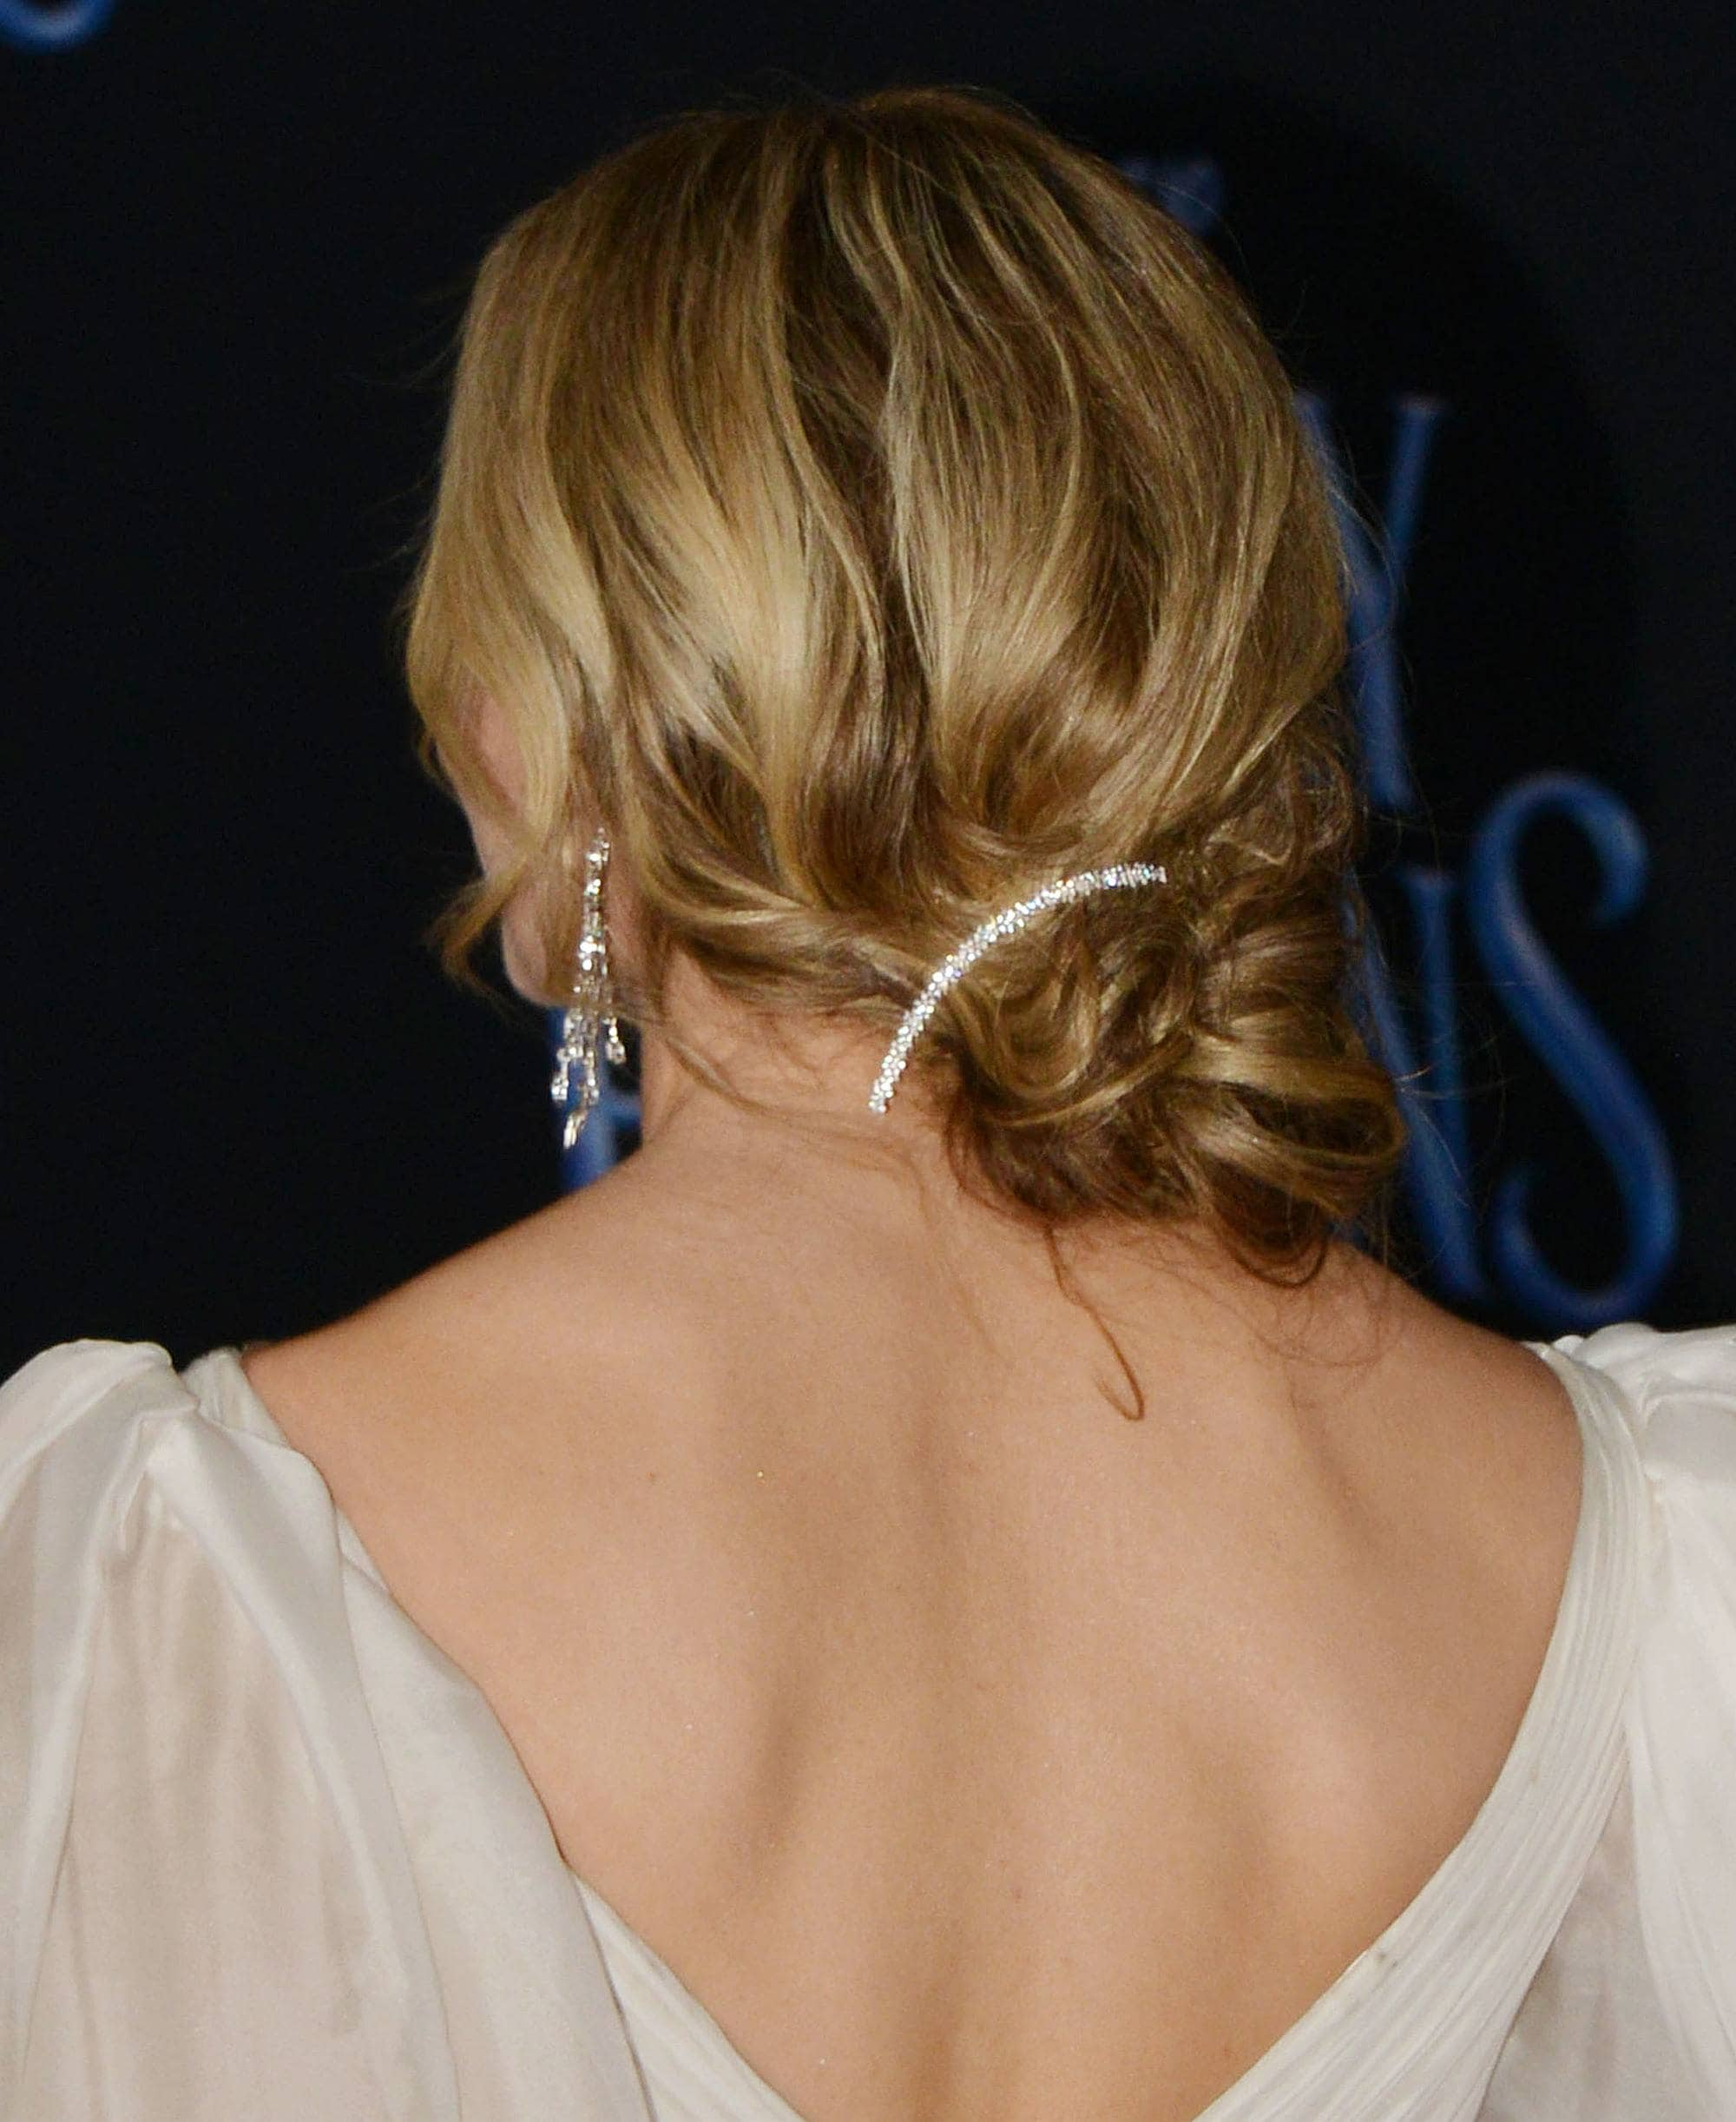 Woman with messy bronde hair styled into a low chignon with hair pin